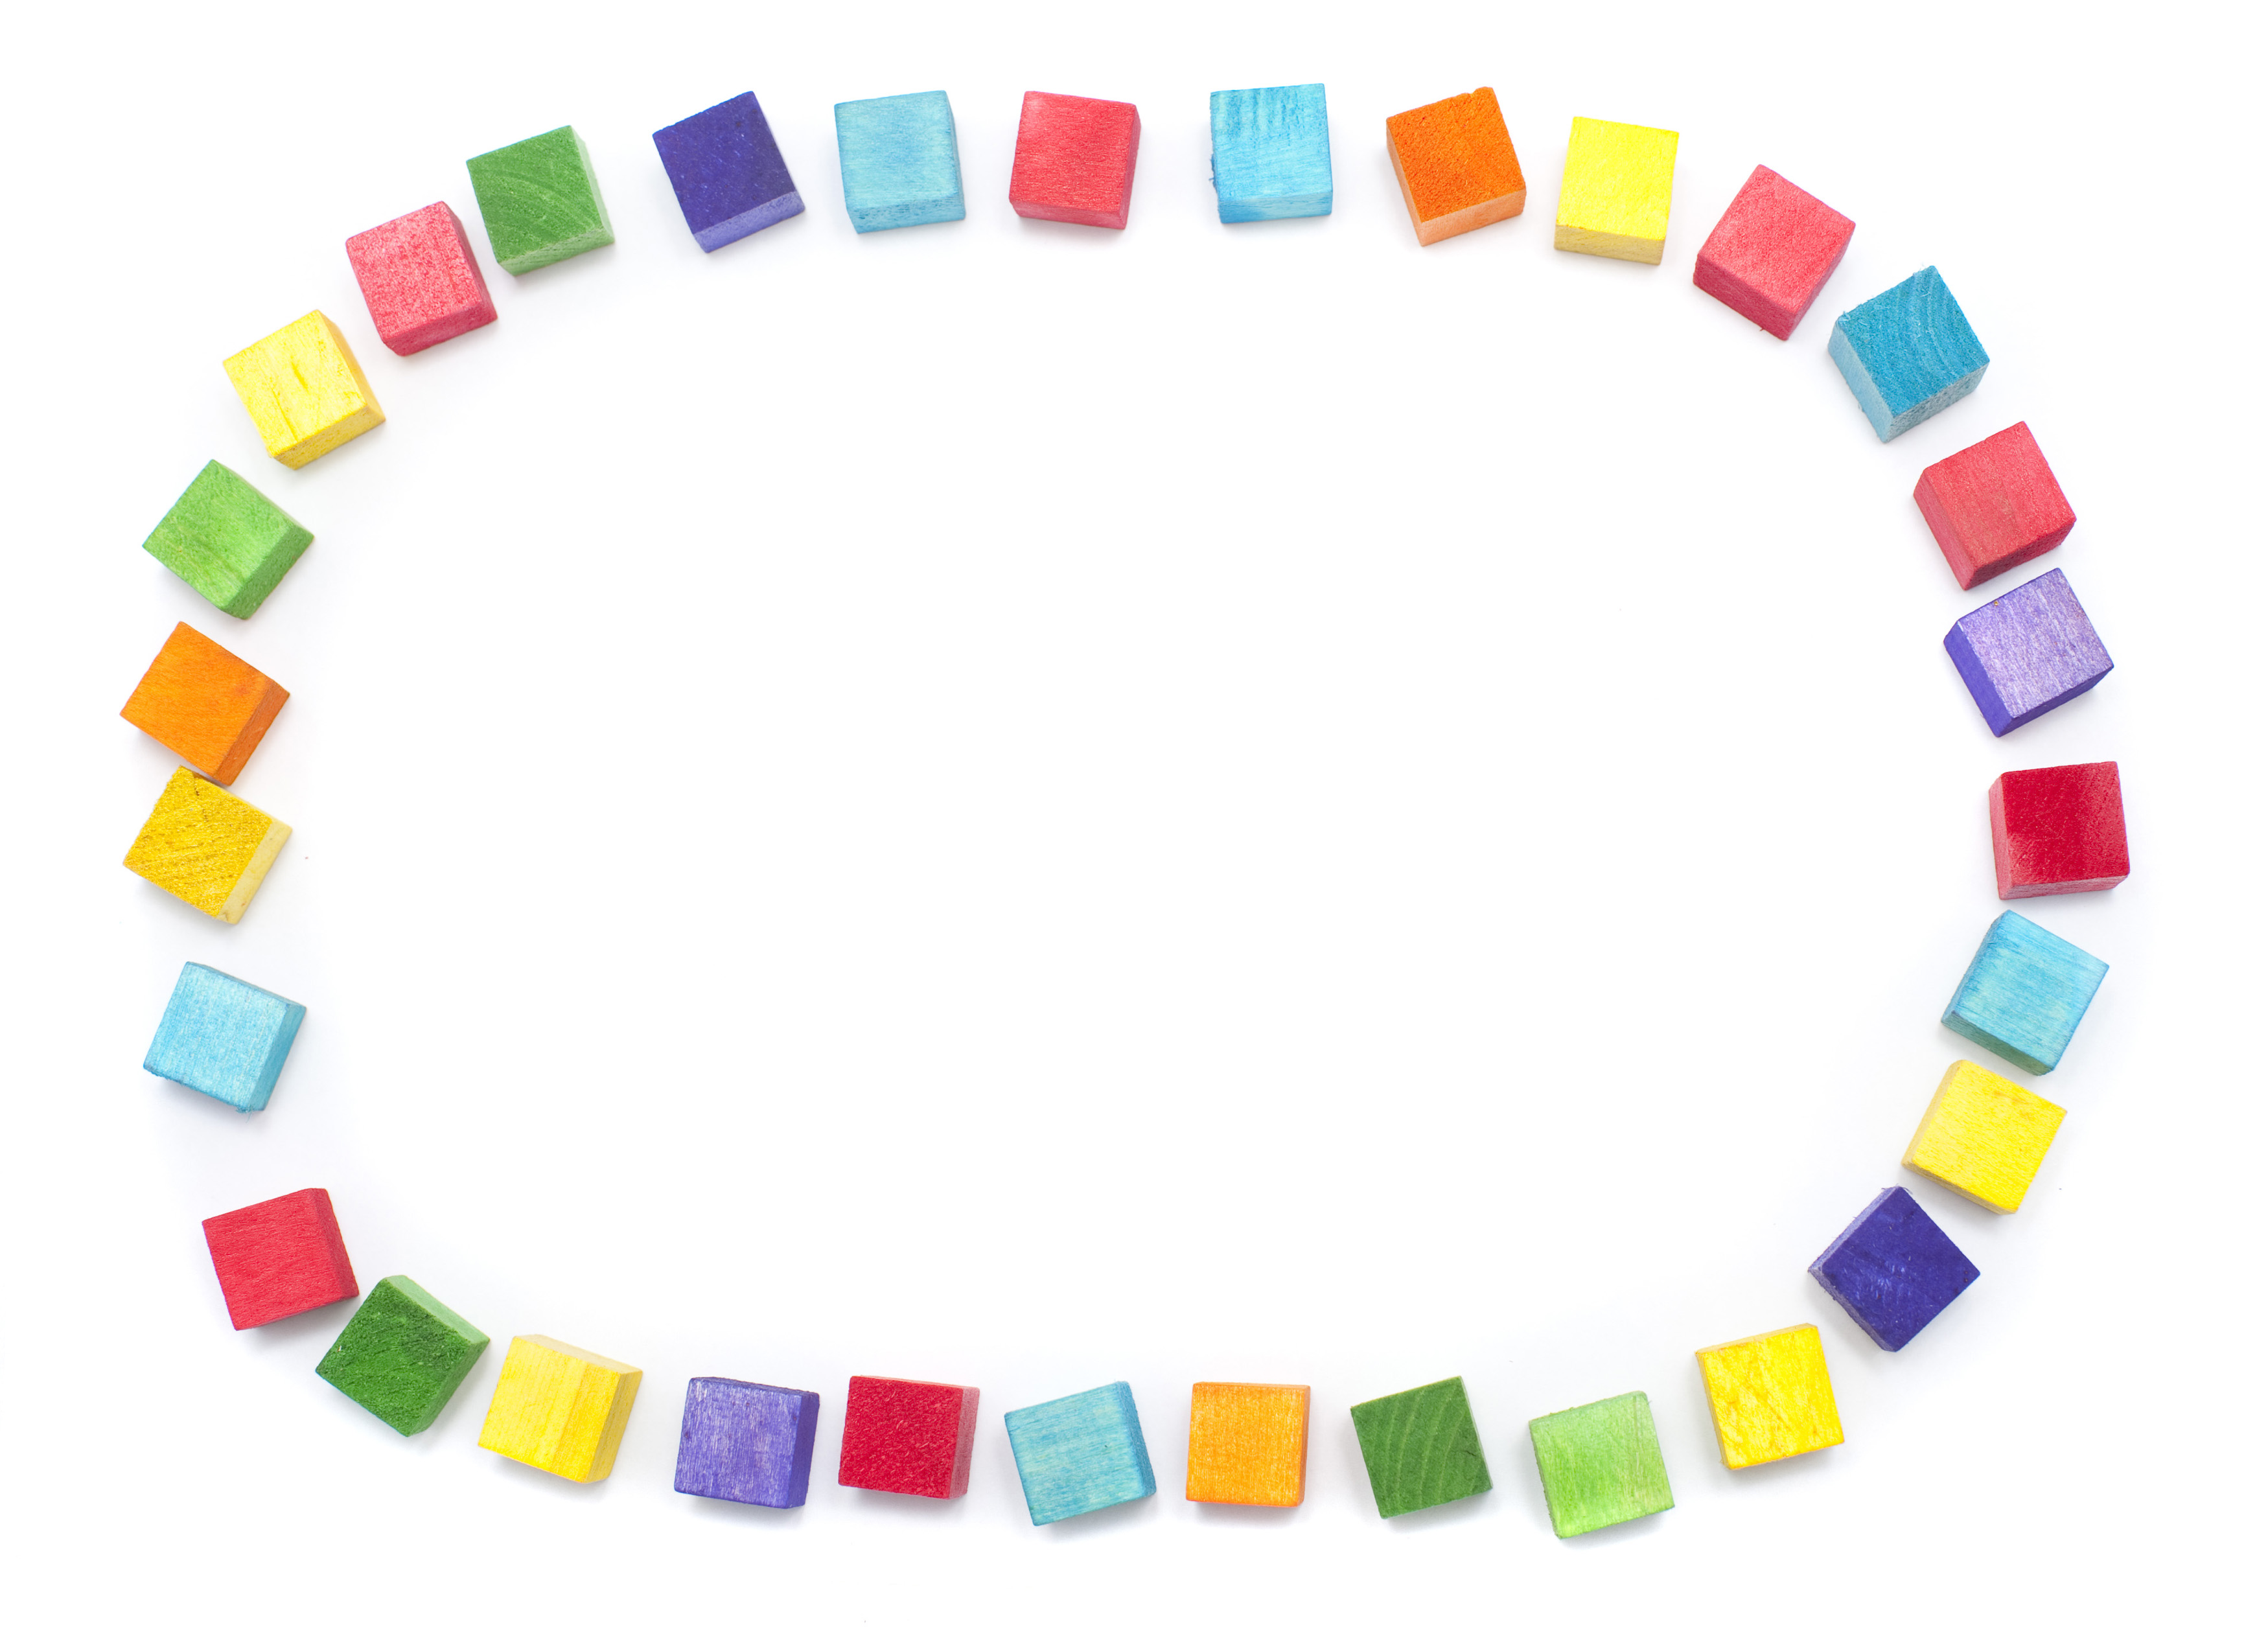 Free image of Colorful oval frame of wooden toy blocks